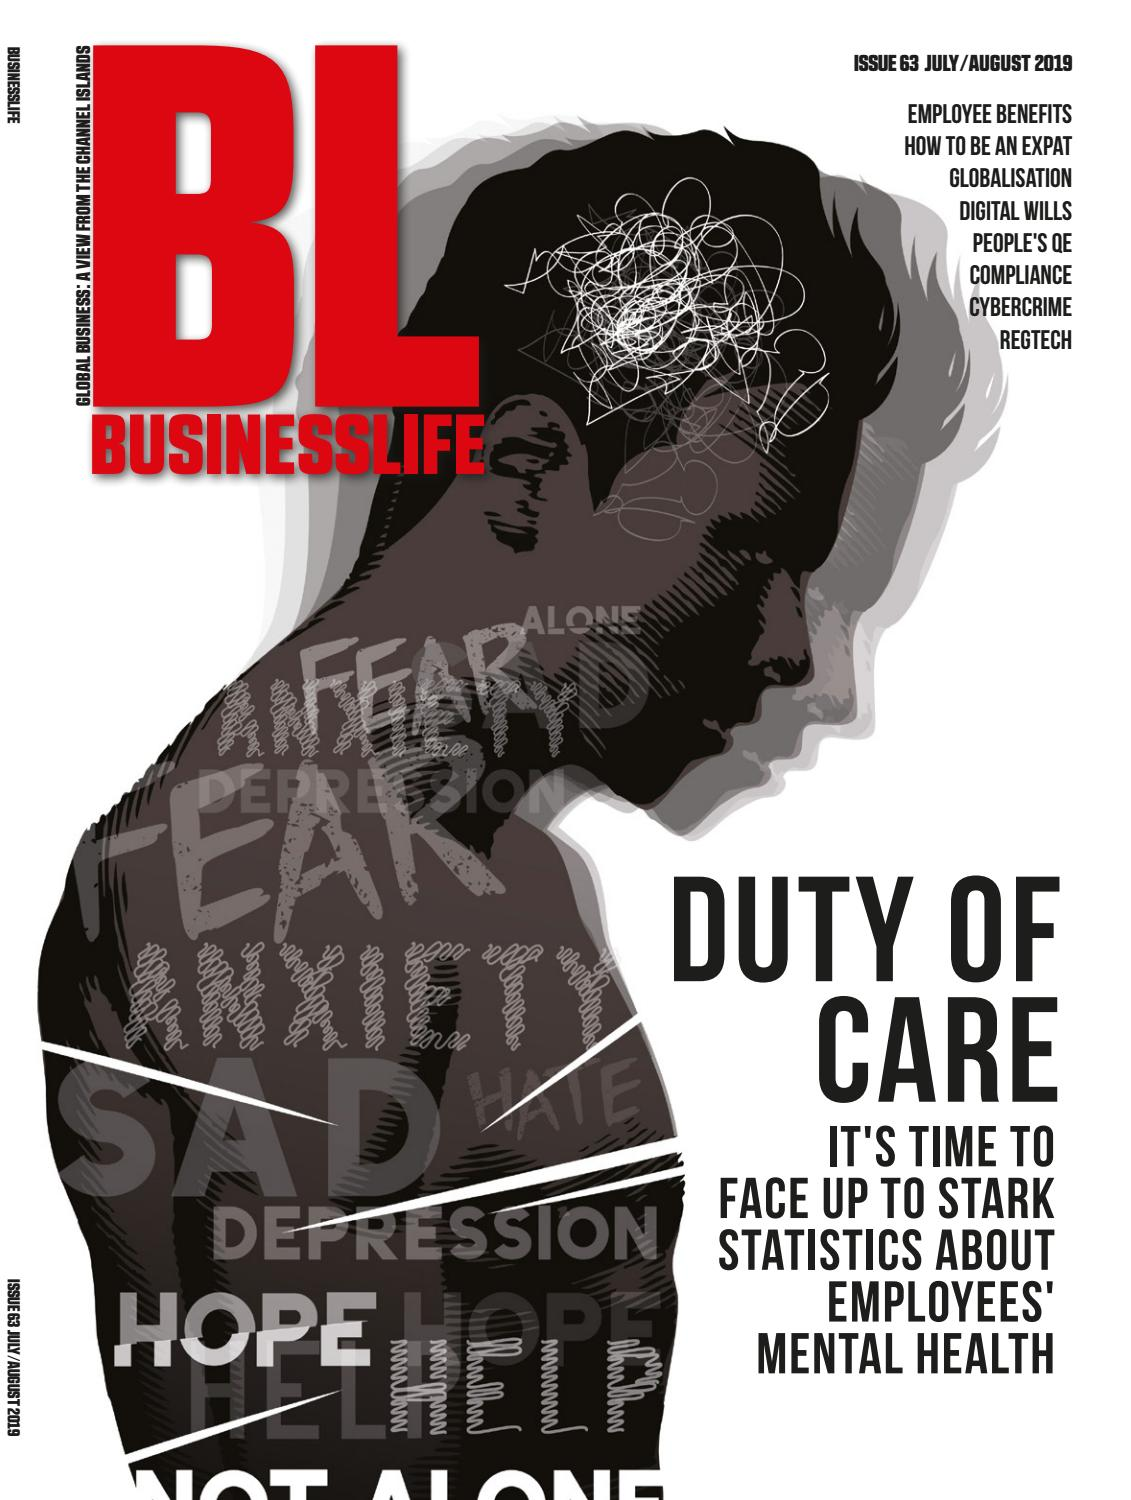 BL Magazine Issue 63 July/August 2019 by BL Magazine - issuu